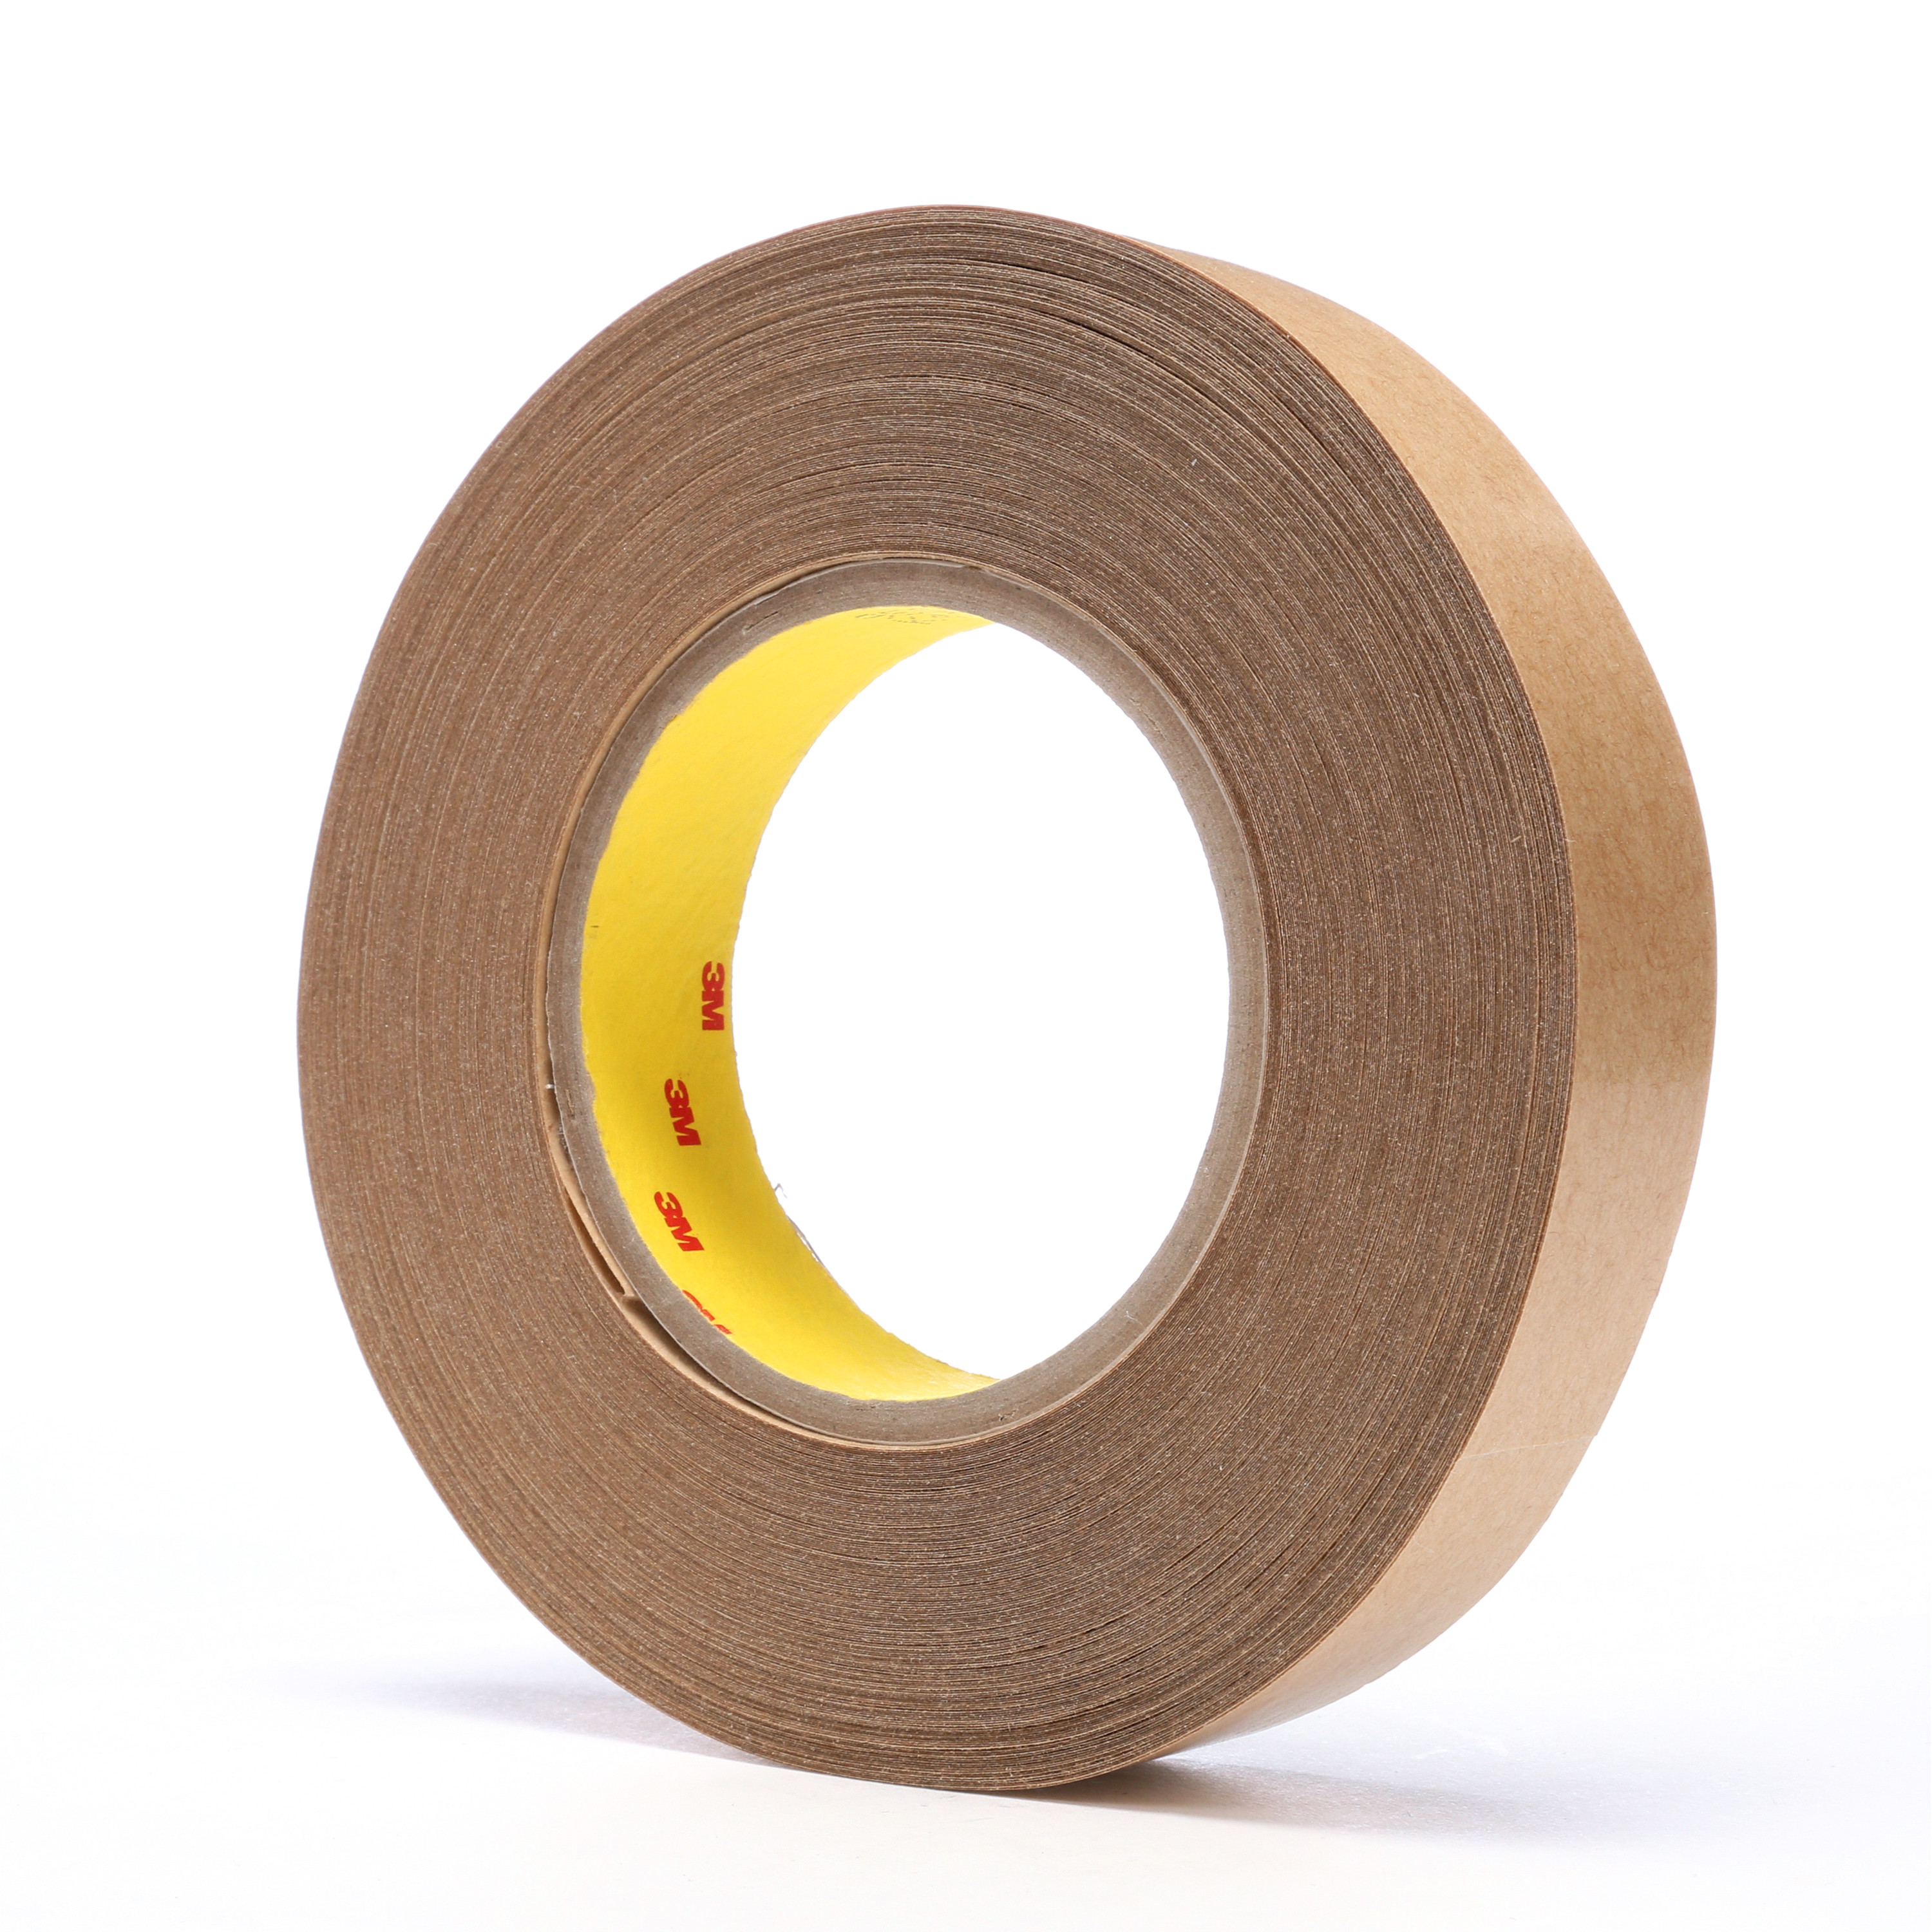 3M™ Adhesive Transfer Tape 950, Clear, 1 in x 60 yd, 5 mil, 36 rolls per case